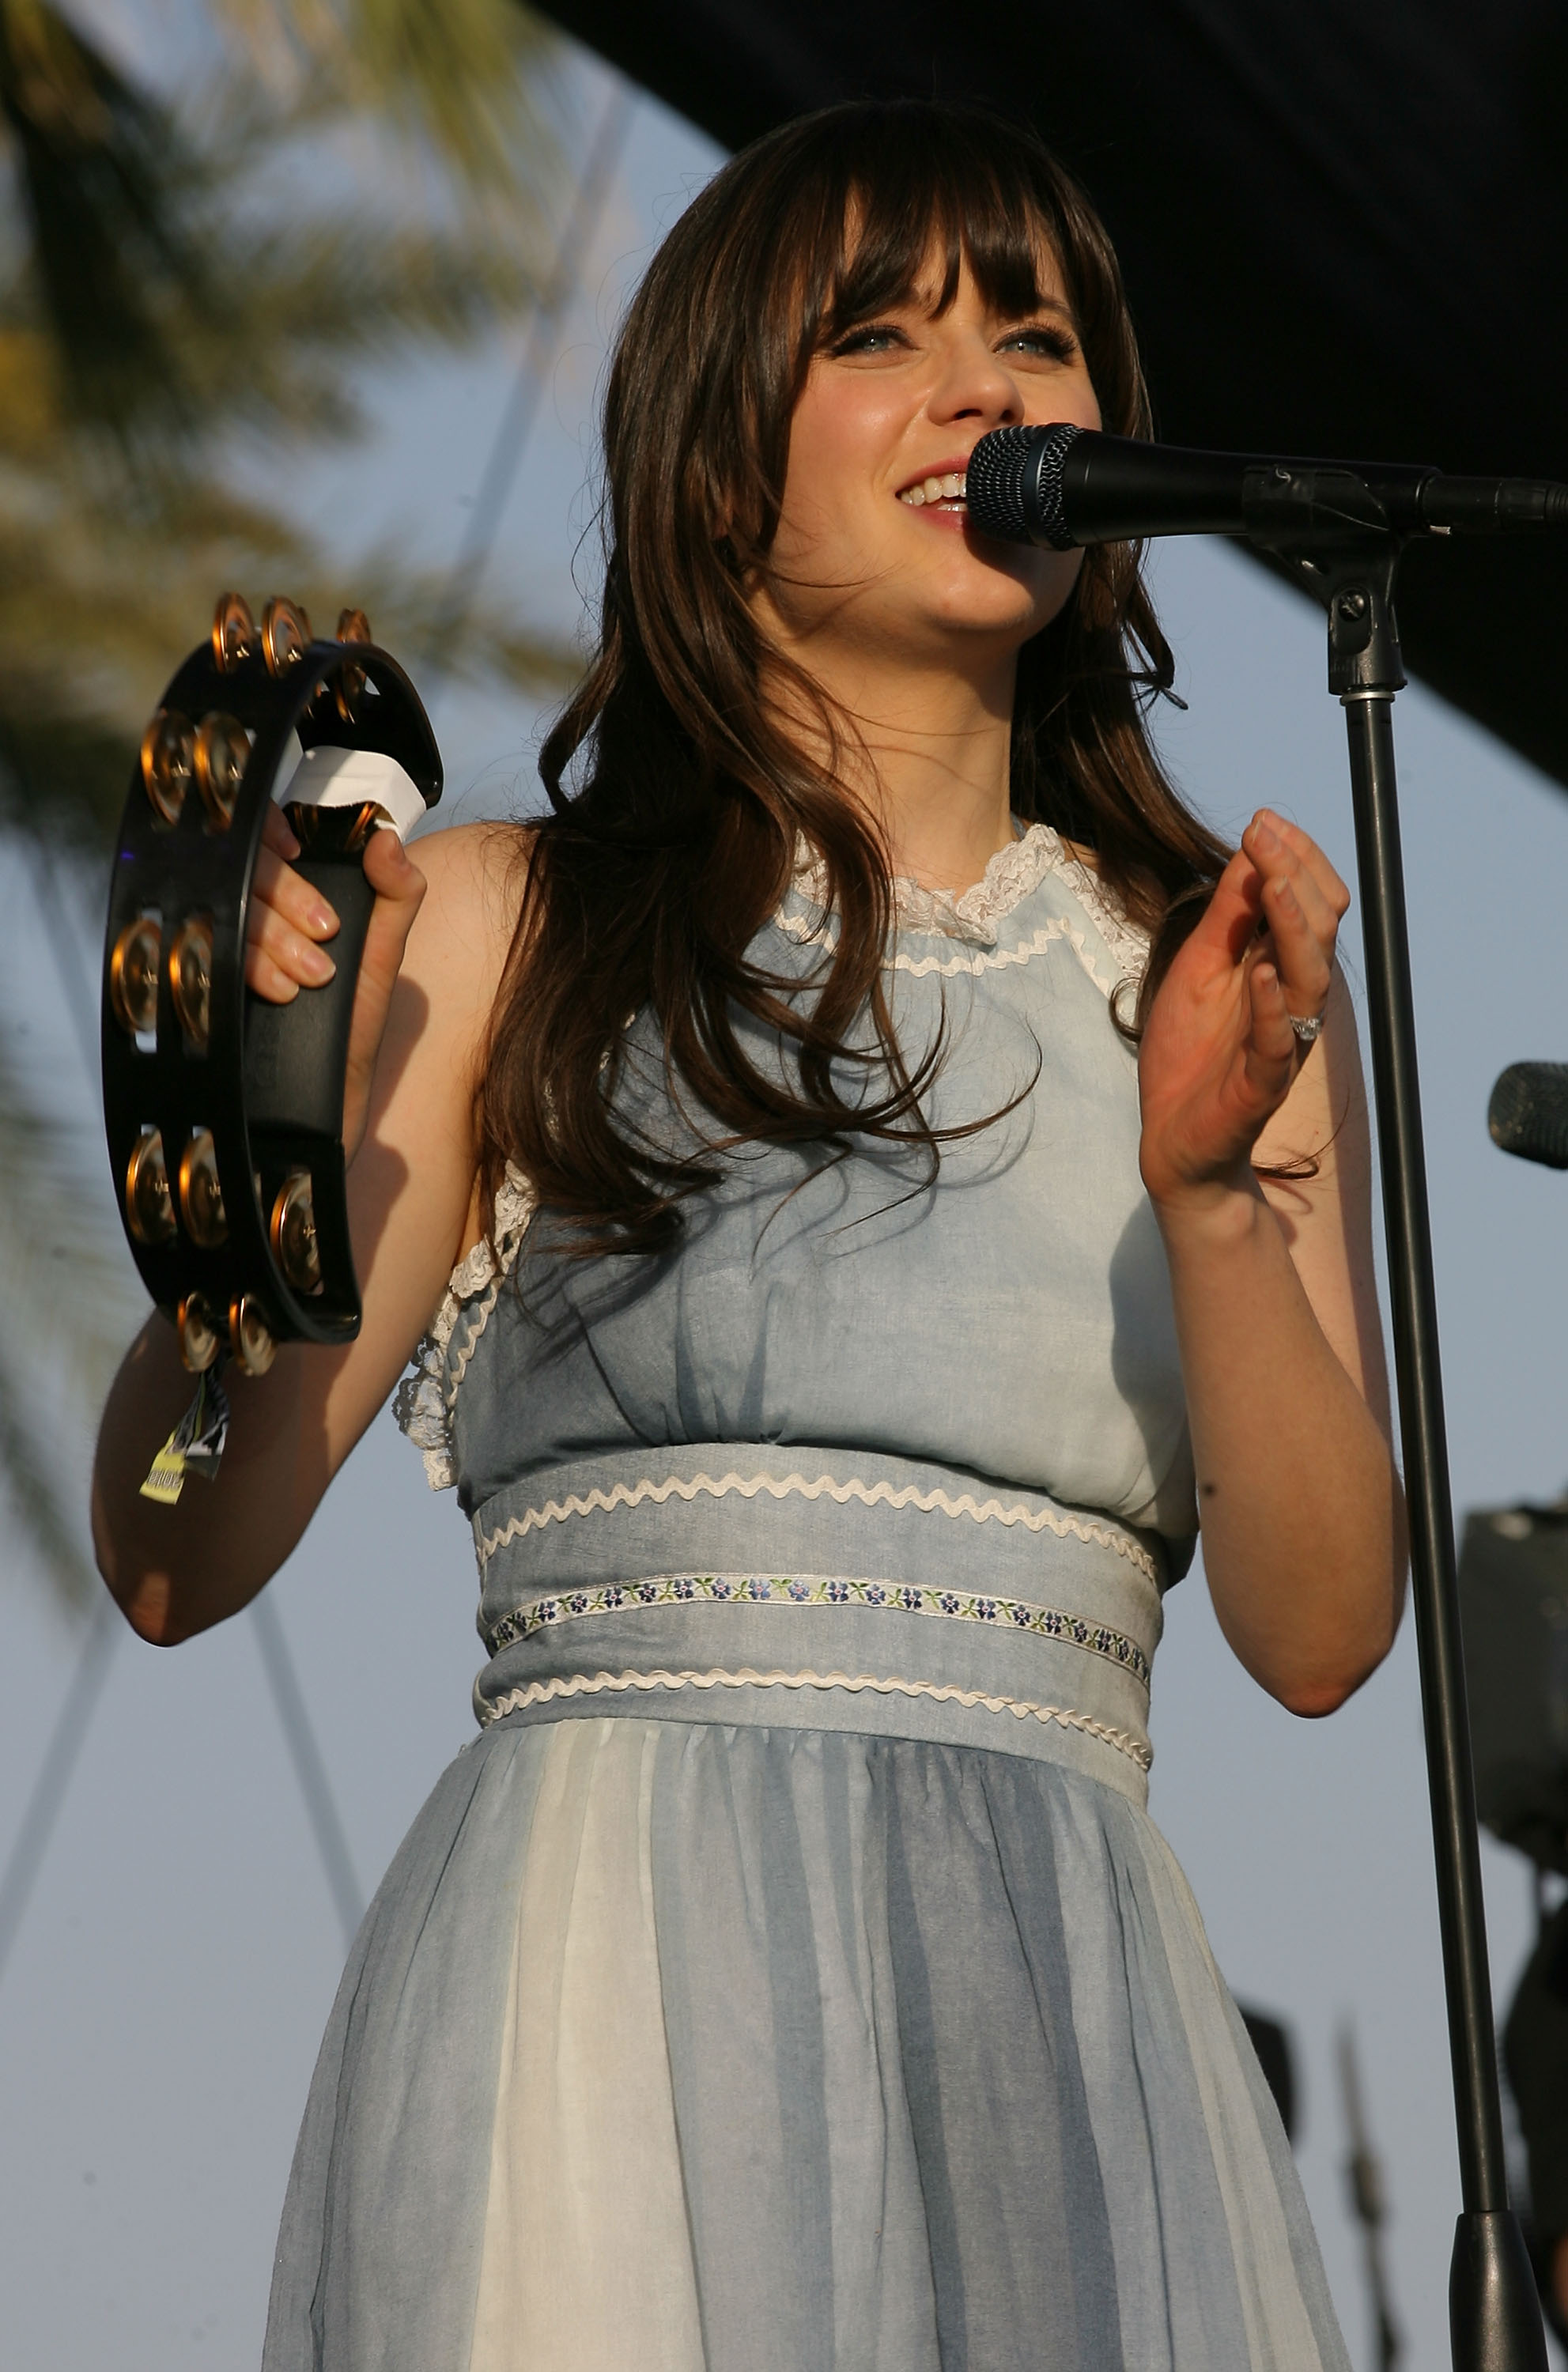 Zooey Deschanel sang with music partner M. Ward as part of She and Him in 2011.